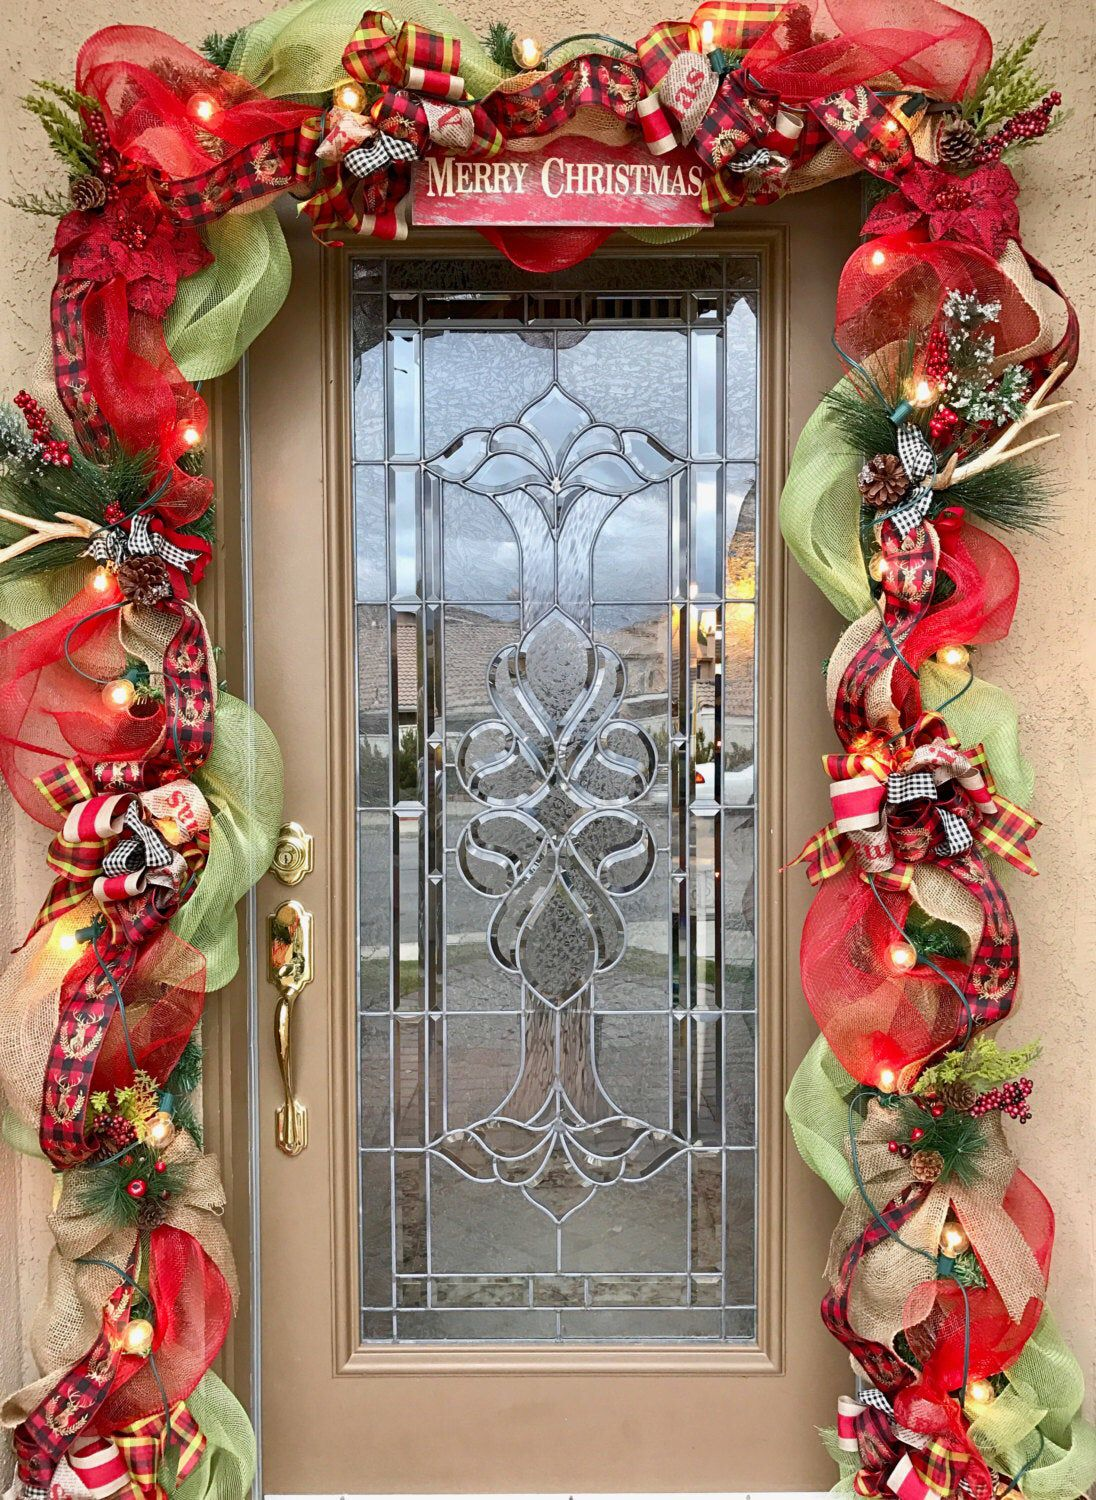 Rustic Christmas Garland With Lights Farmhouse Christmas Door Garland Rustic Christmas Door Swag Farmhouse Christmas Front Door Decor Christmas Lights Garland Diy Christmas Door Front Door Christmas Decorations